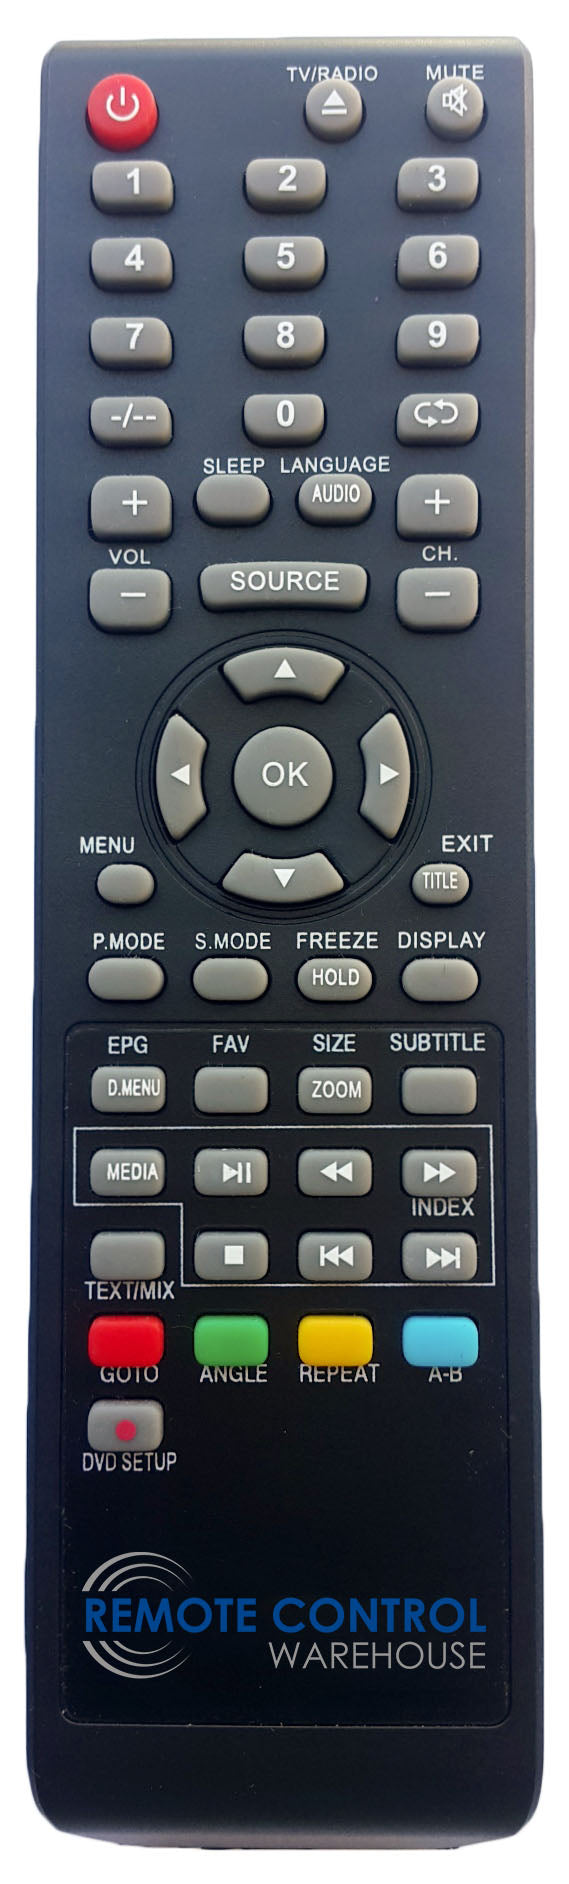 AKAI REPLACEMENT REMOTE CONTROL  - DVD-13203  DVD13203  LCD TV - Remote Control Warehouse